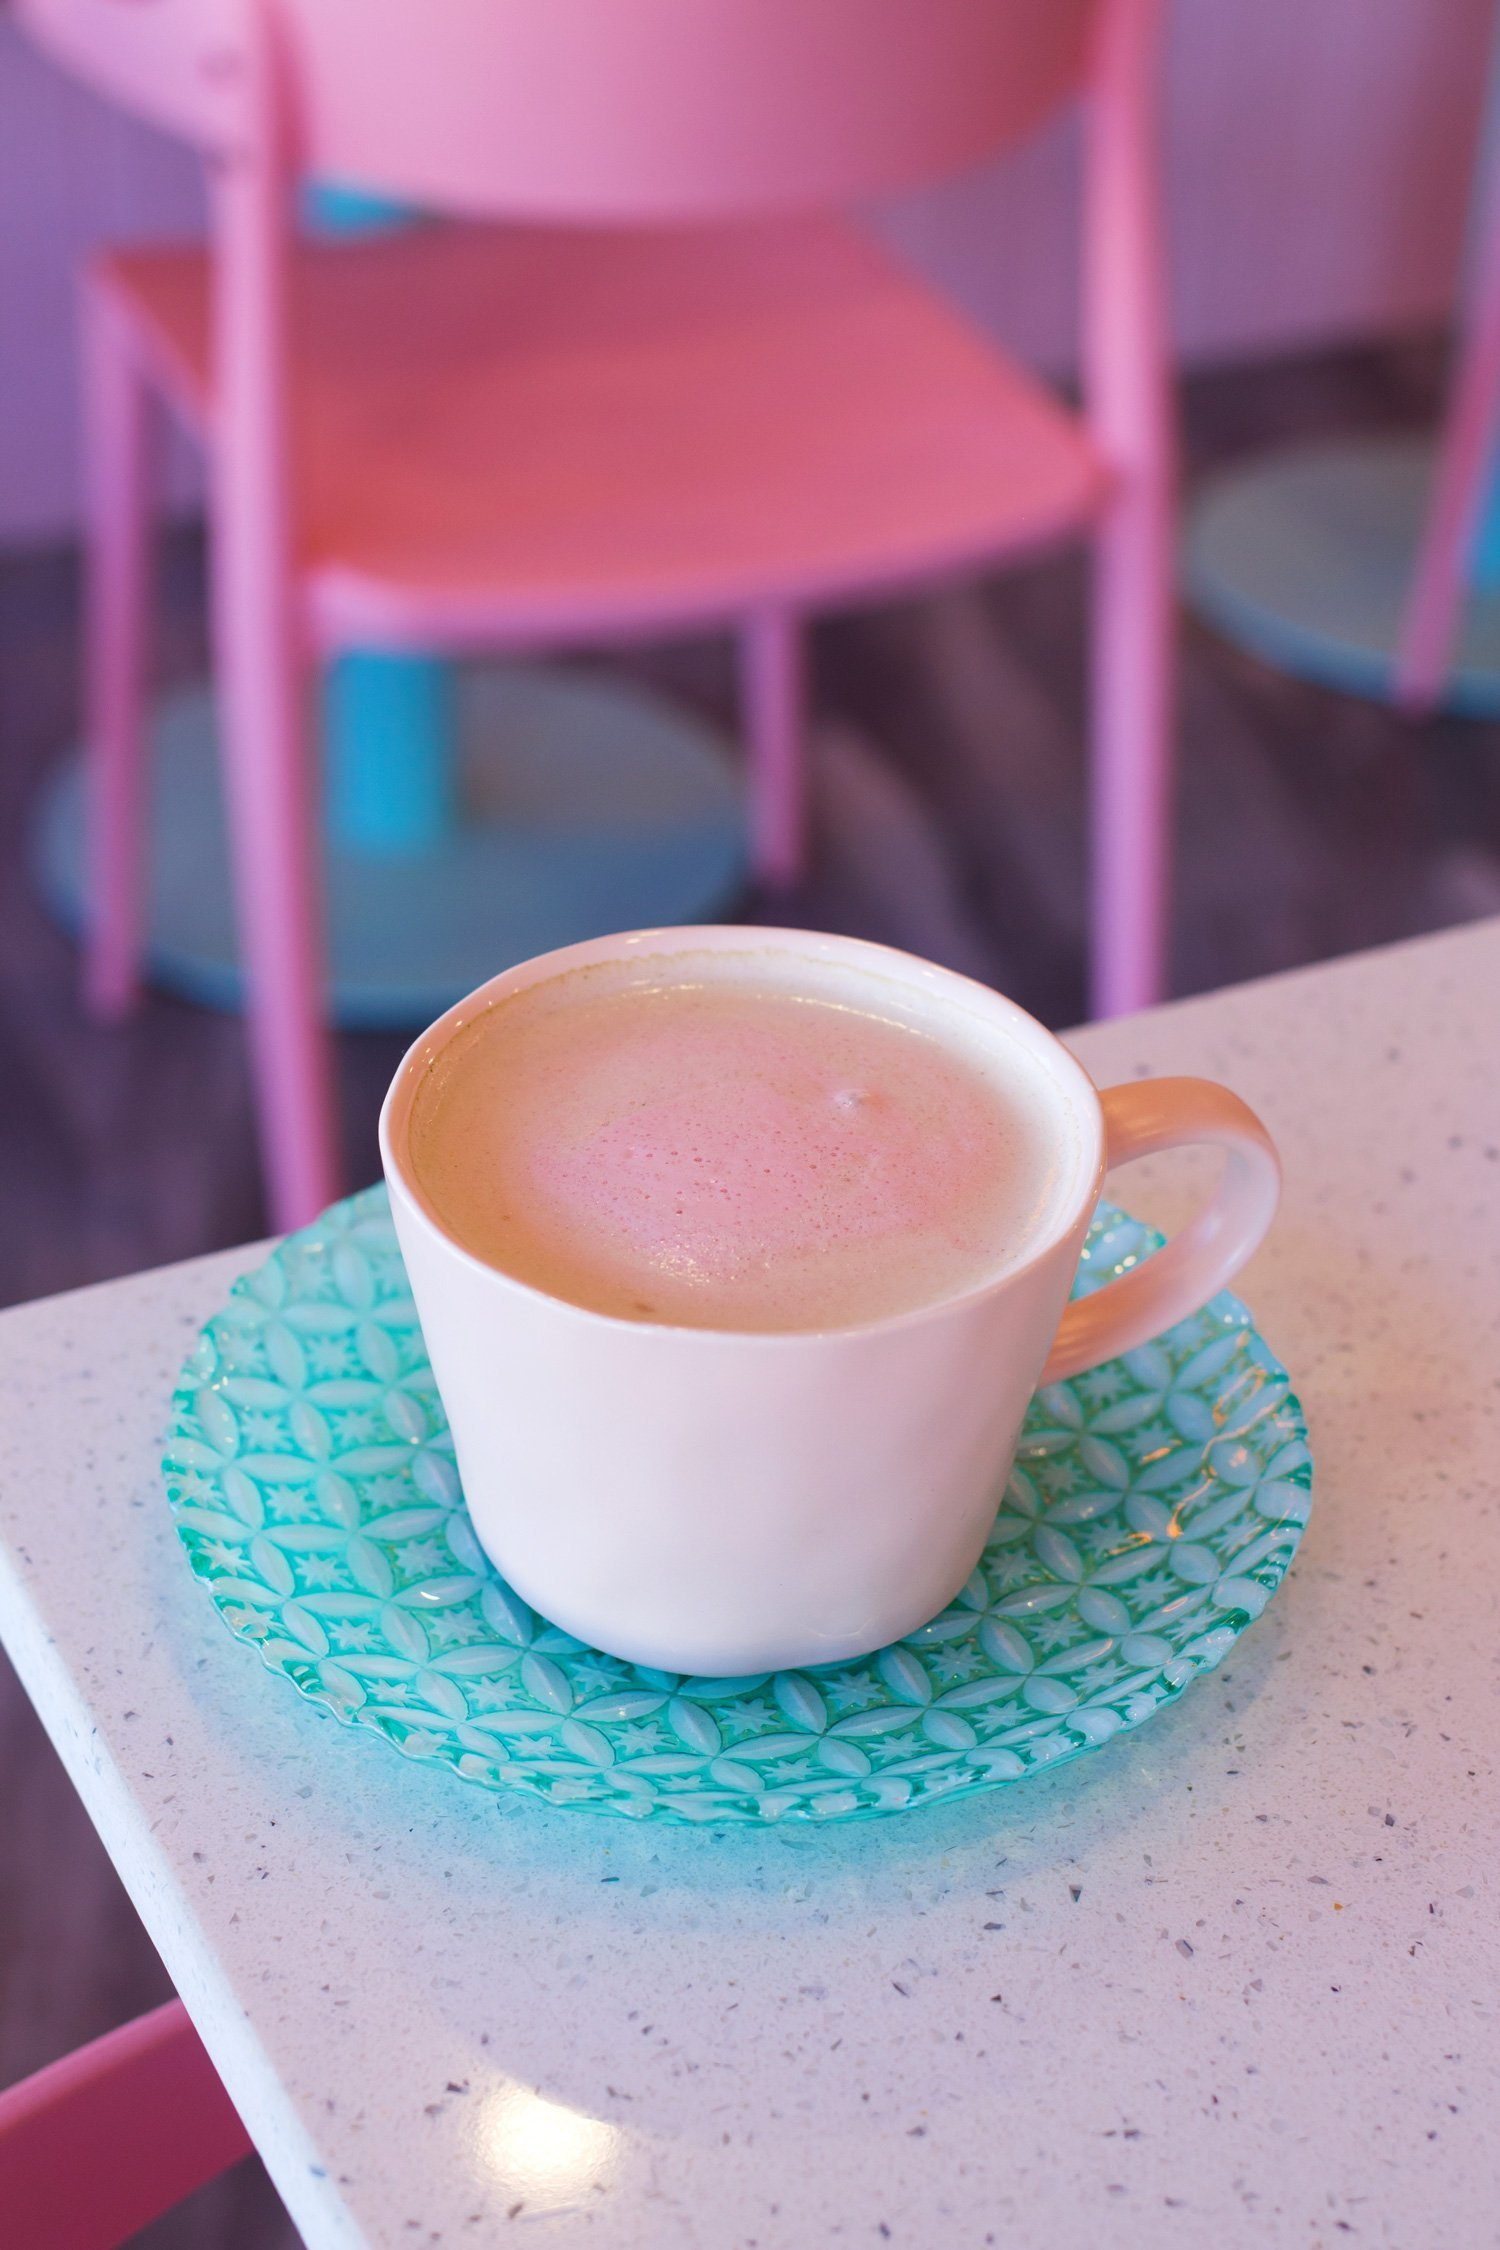 The Pink Lavender Latte